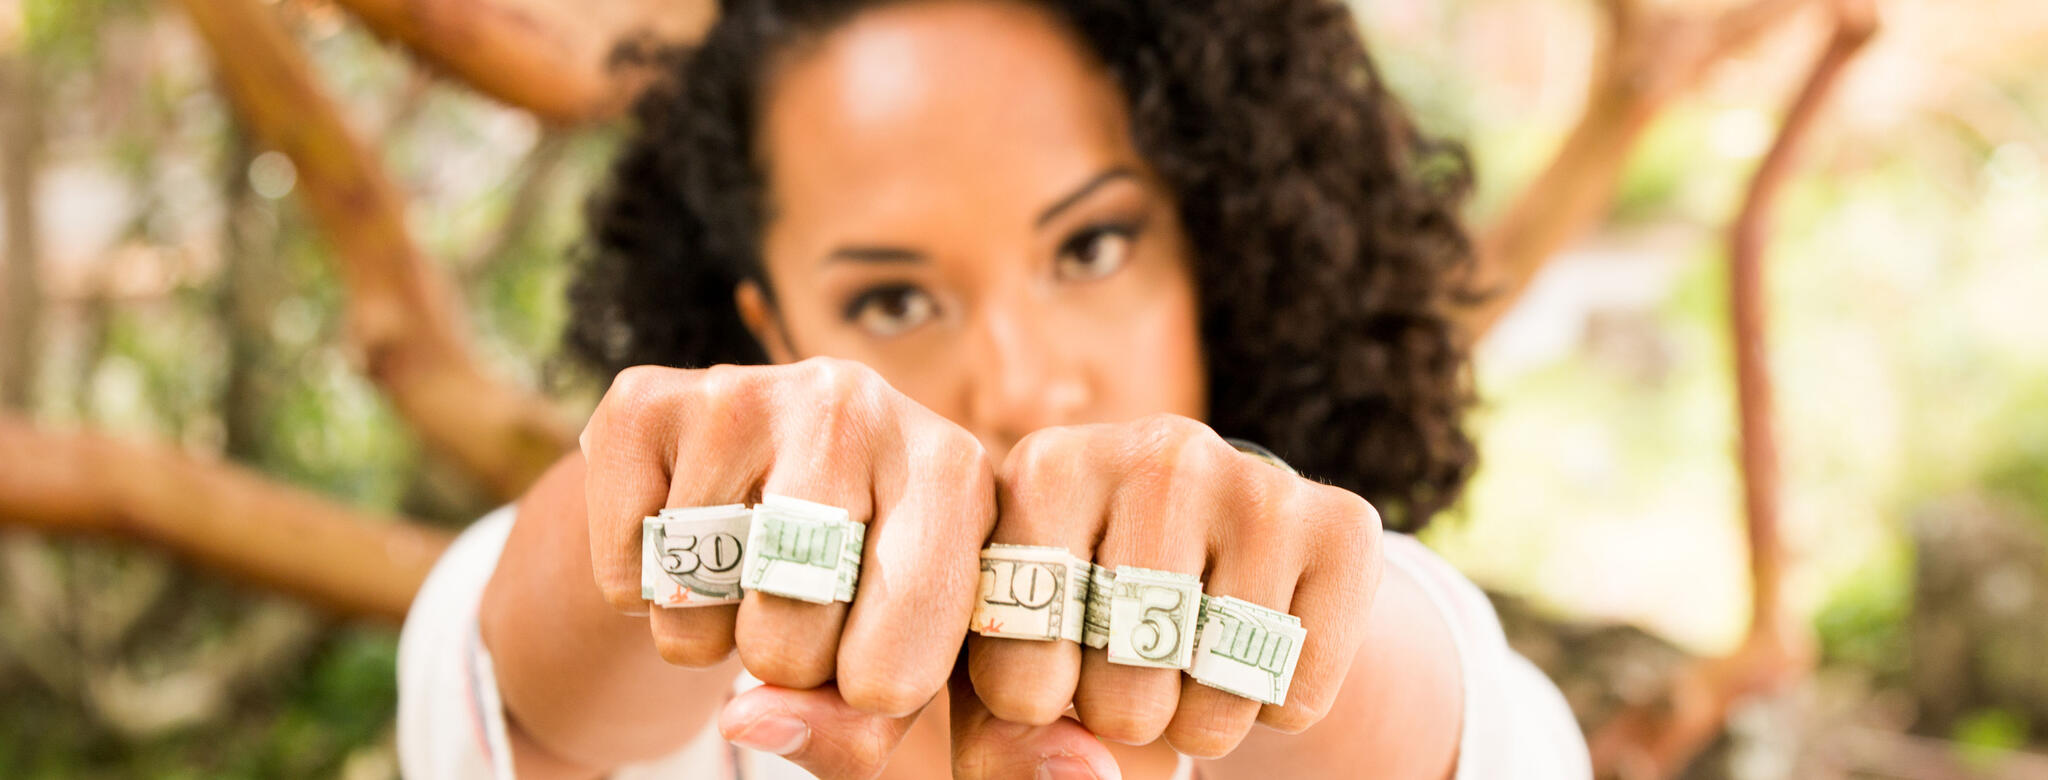 woman in white shirt with rings made of cash